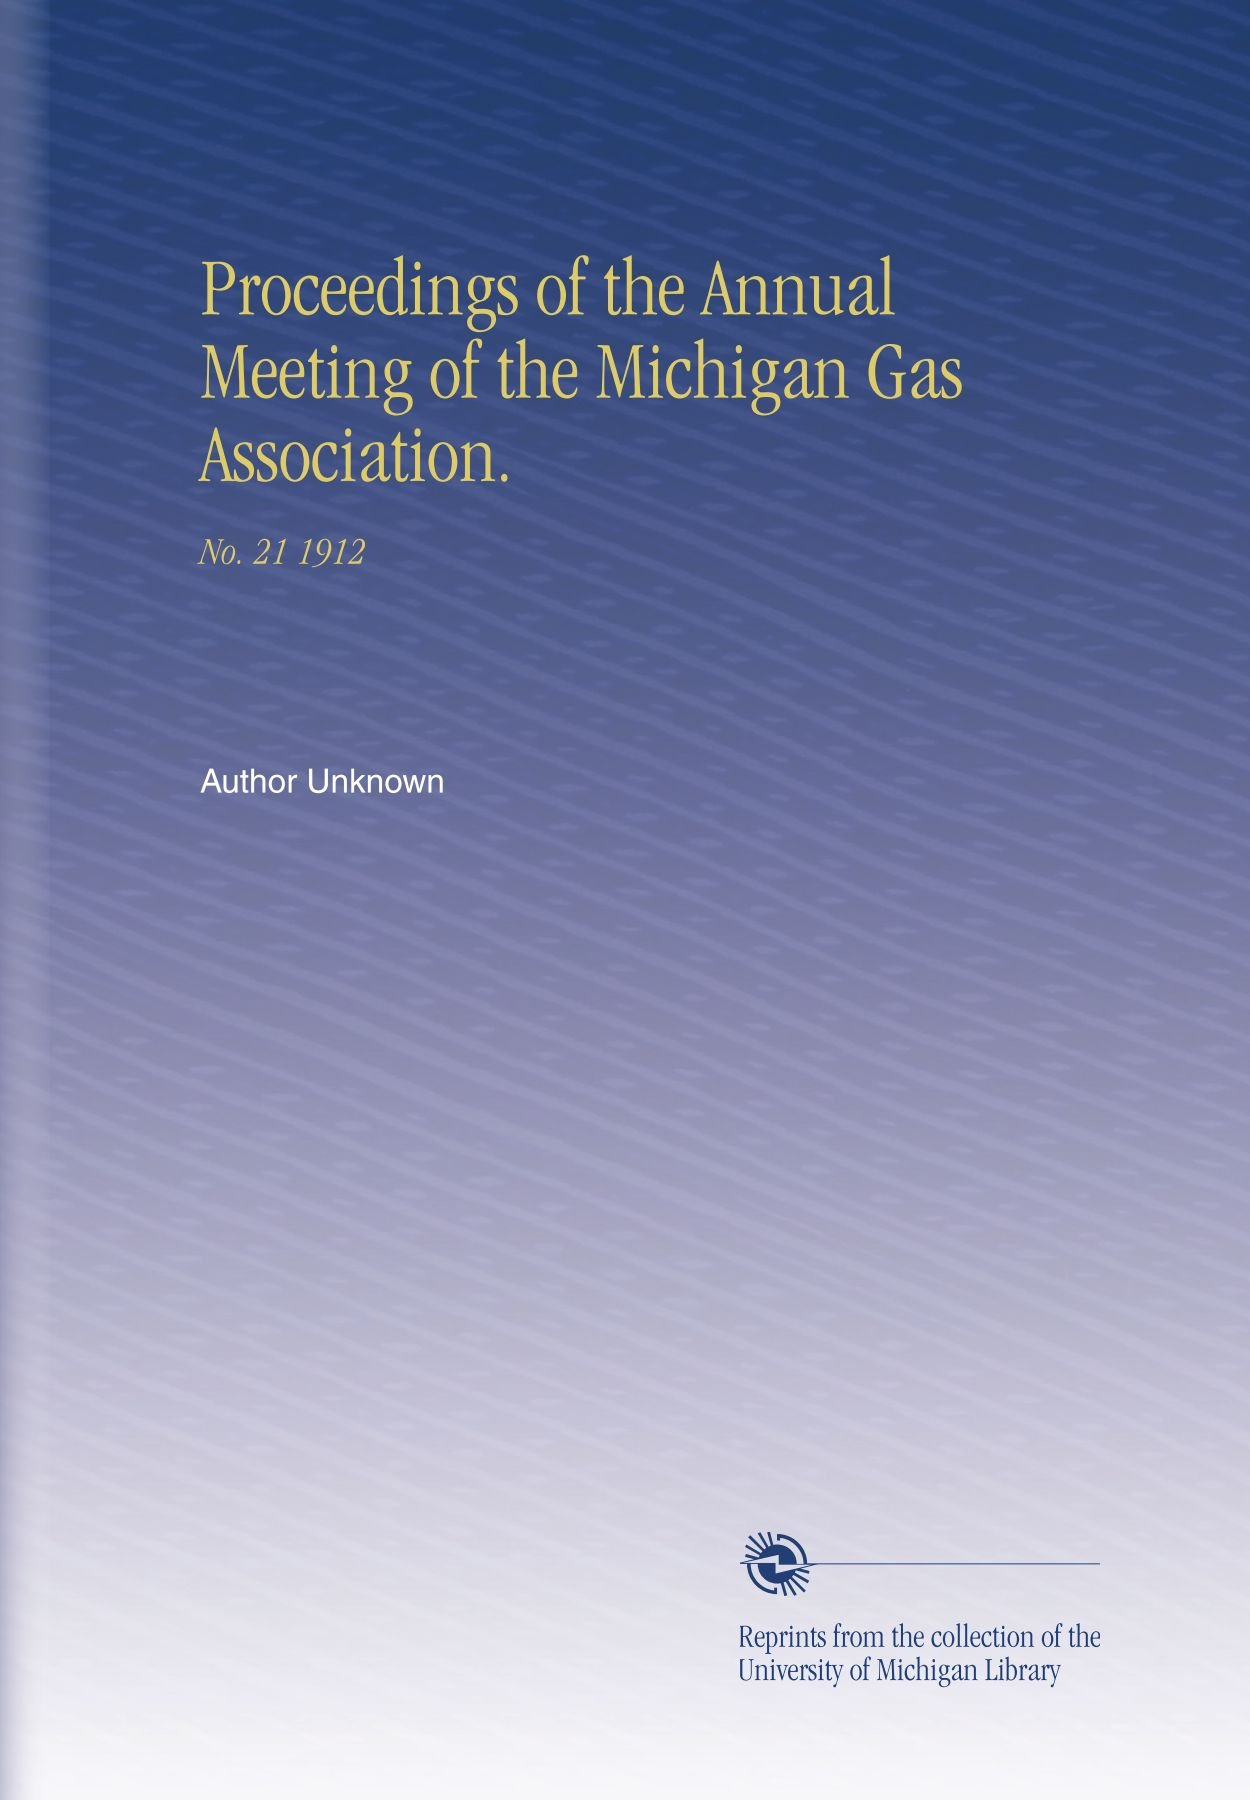 Download Proceedings of the Annual Meeting of the Michigan Gas Association.: No.  21 1912 pdf epub